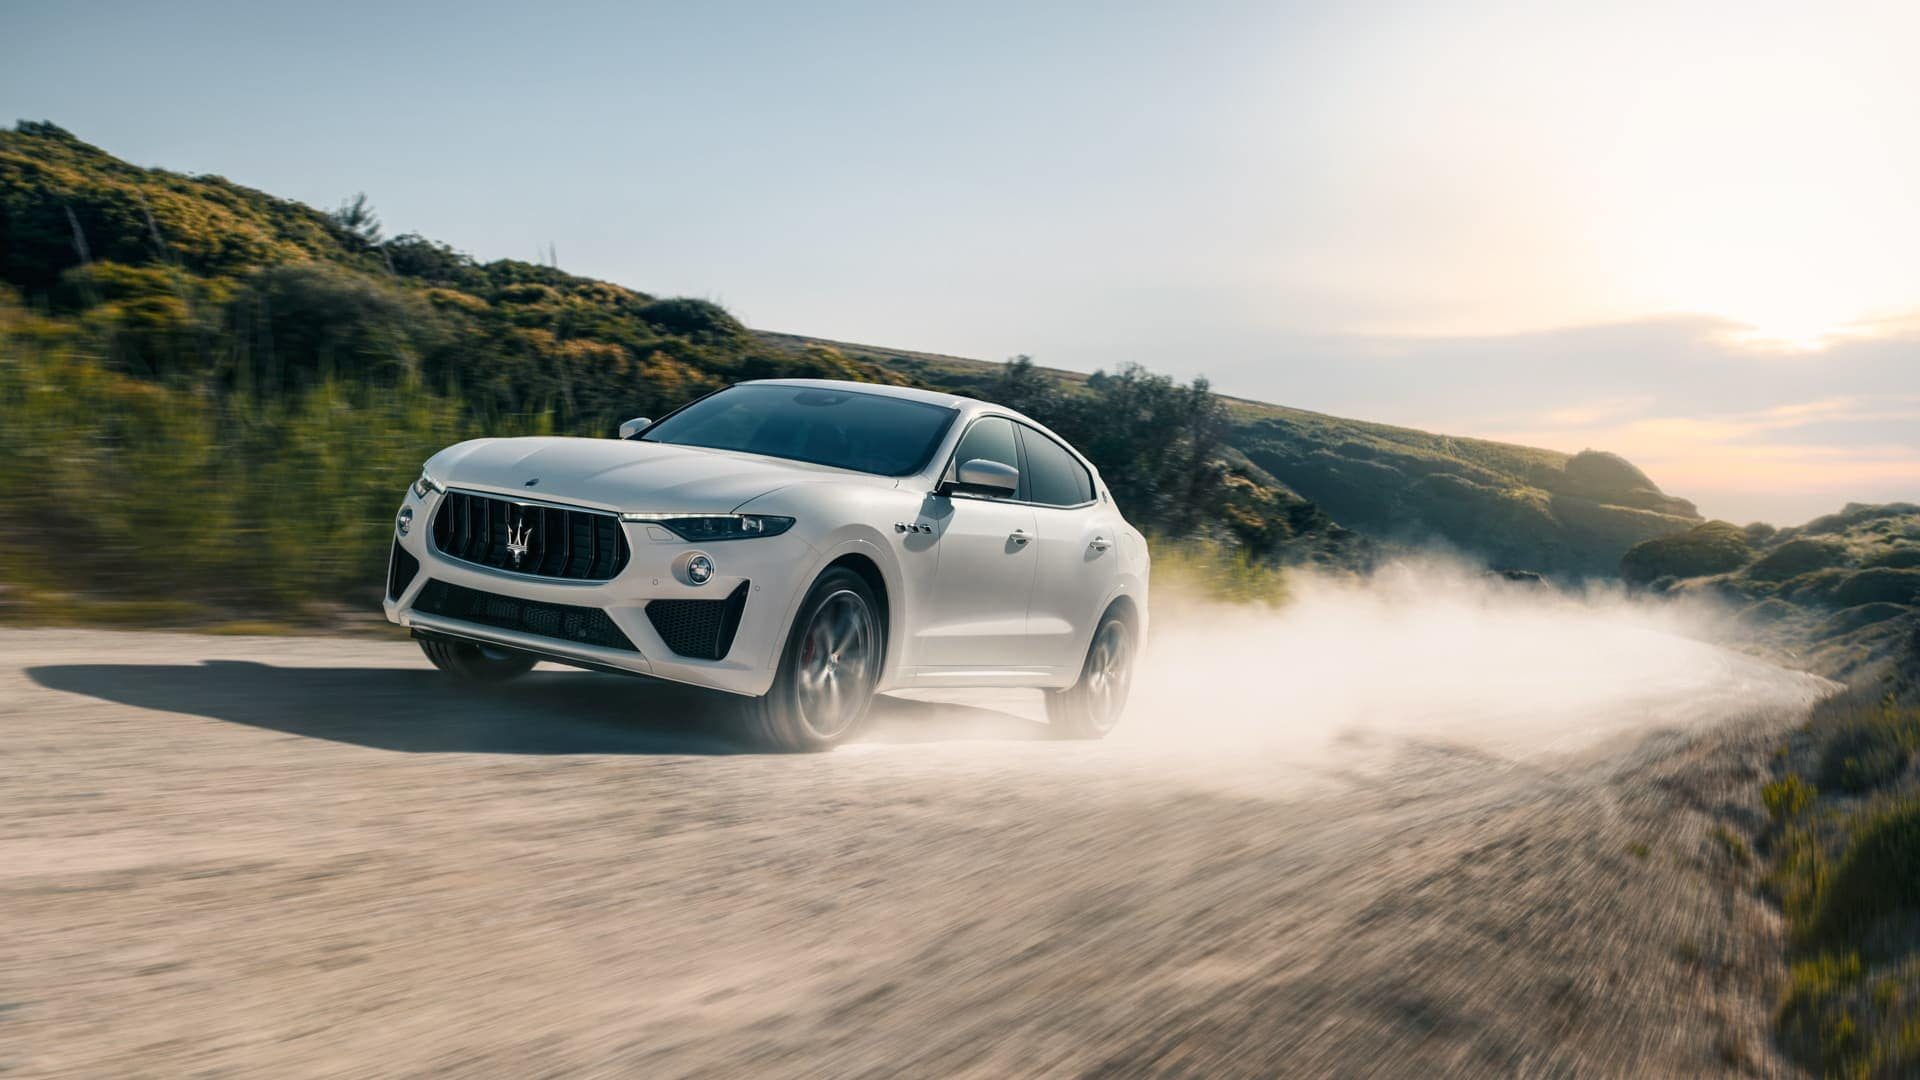 2019 Maserati Levante in white driving on trail